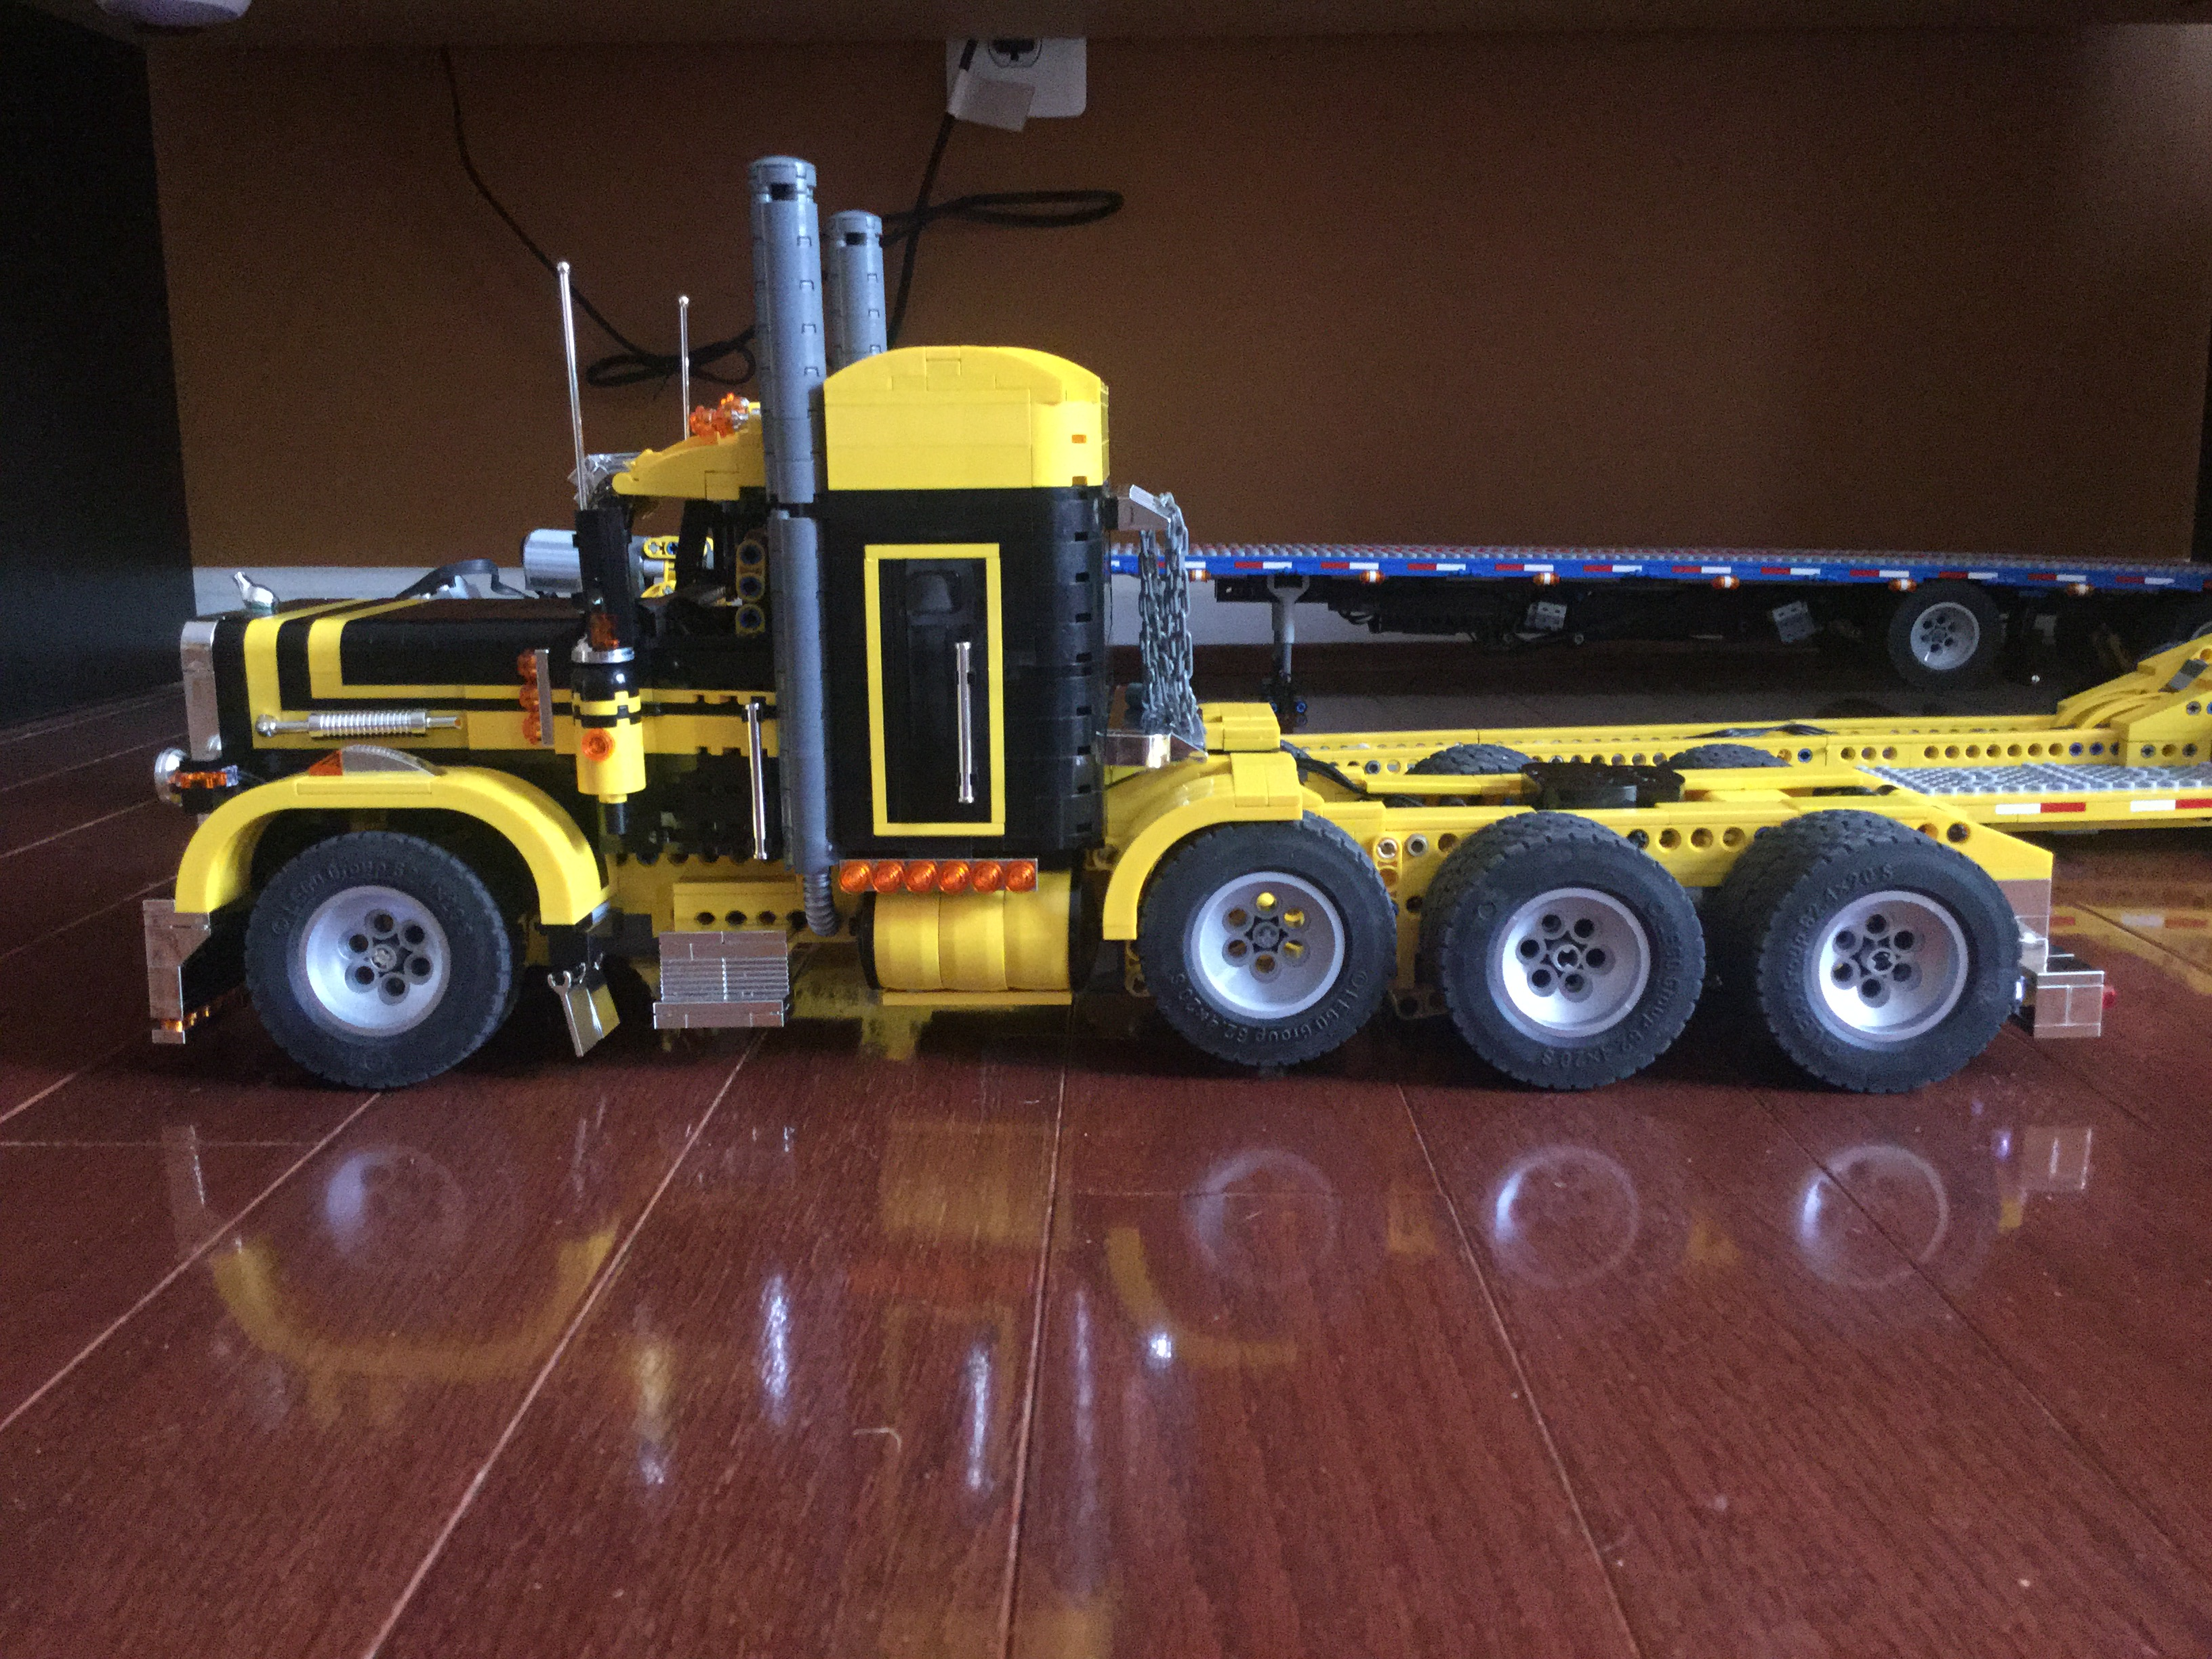 2legoornot2lego s pages bricksafe - Kenworth W900 In The Style Of Set 5580 2 Lego Pinterest Lego Photos And Putting It Together